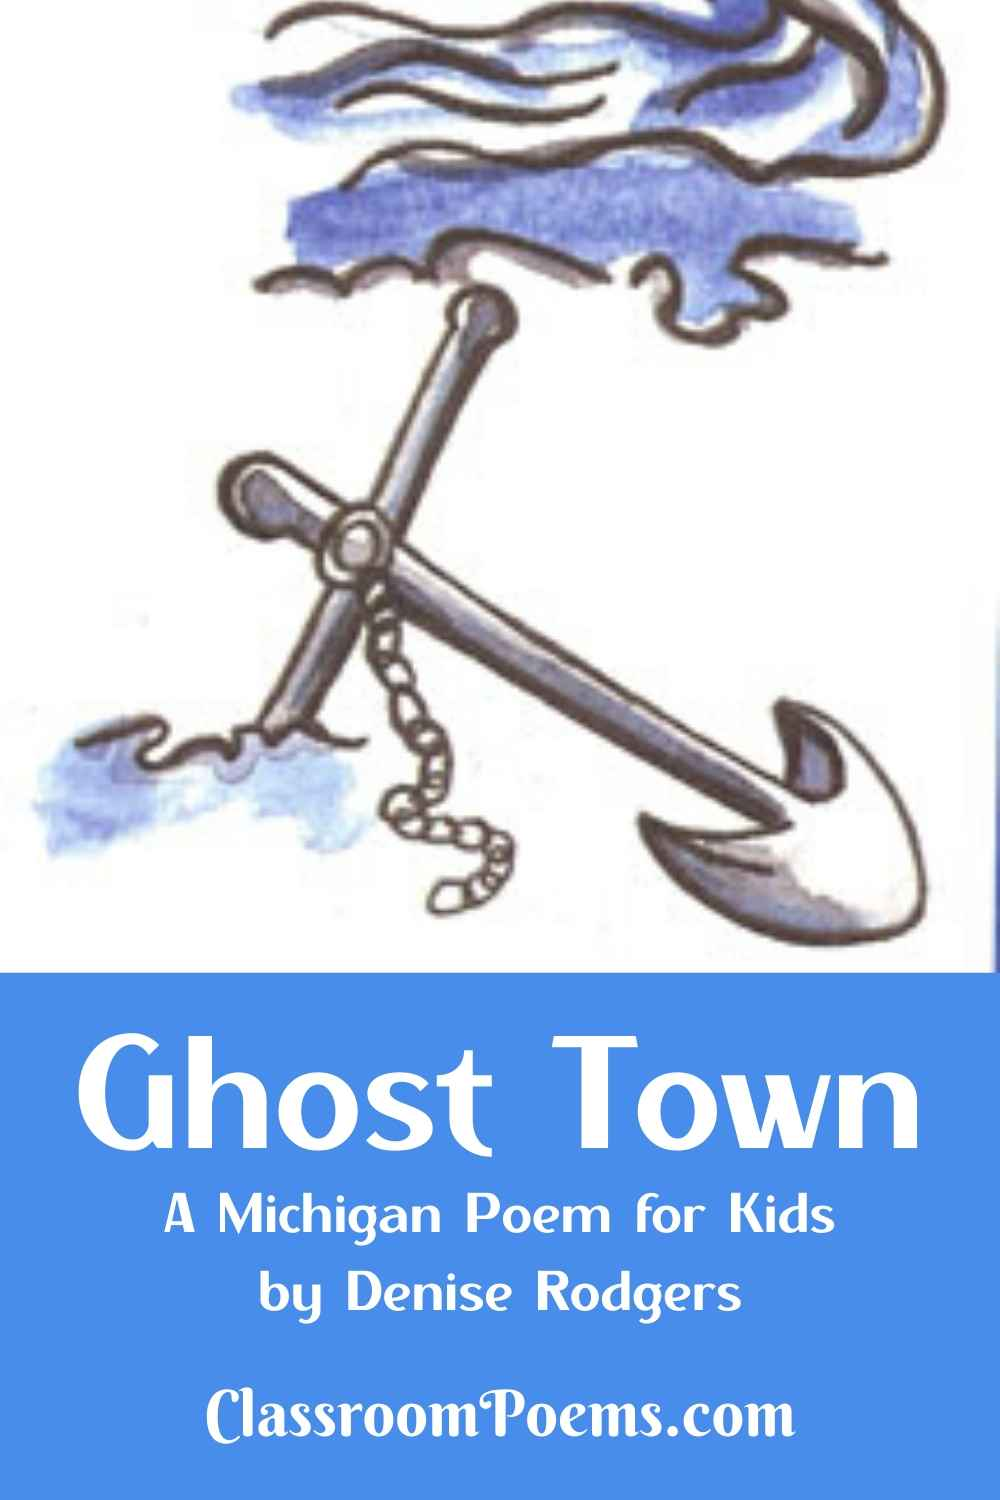 GHOST TOWN, a Michigan poem by Denise Rodgers on ClassroomPoems.com.